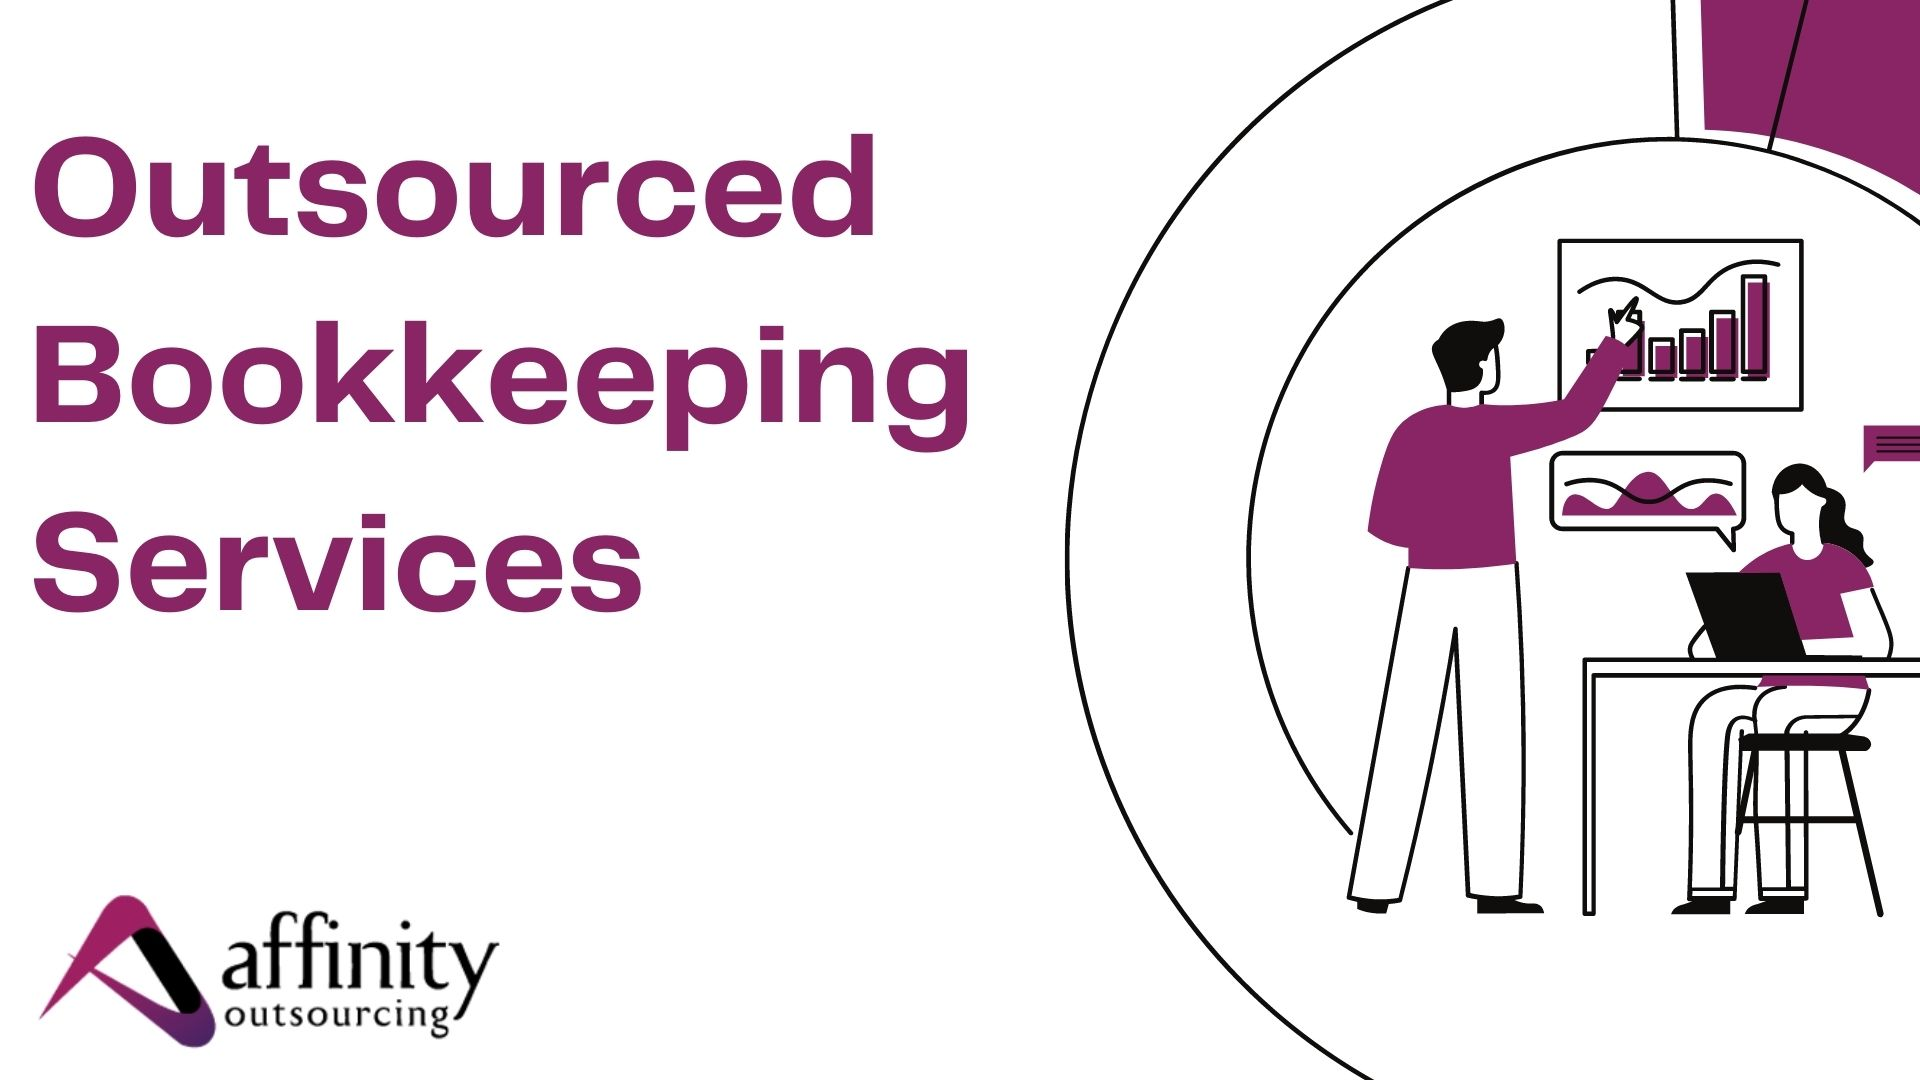 Low-Cost Outsourced Bookkeeping Services Amid the COVID19 for Accounting Practices in the UK